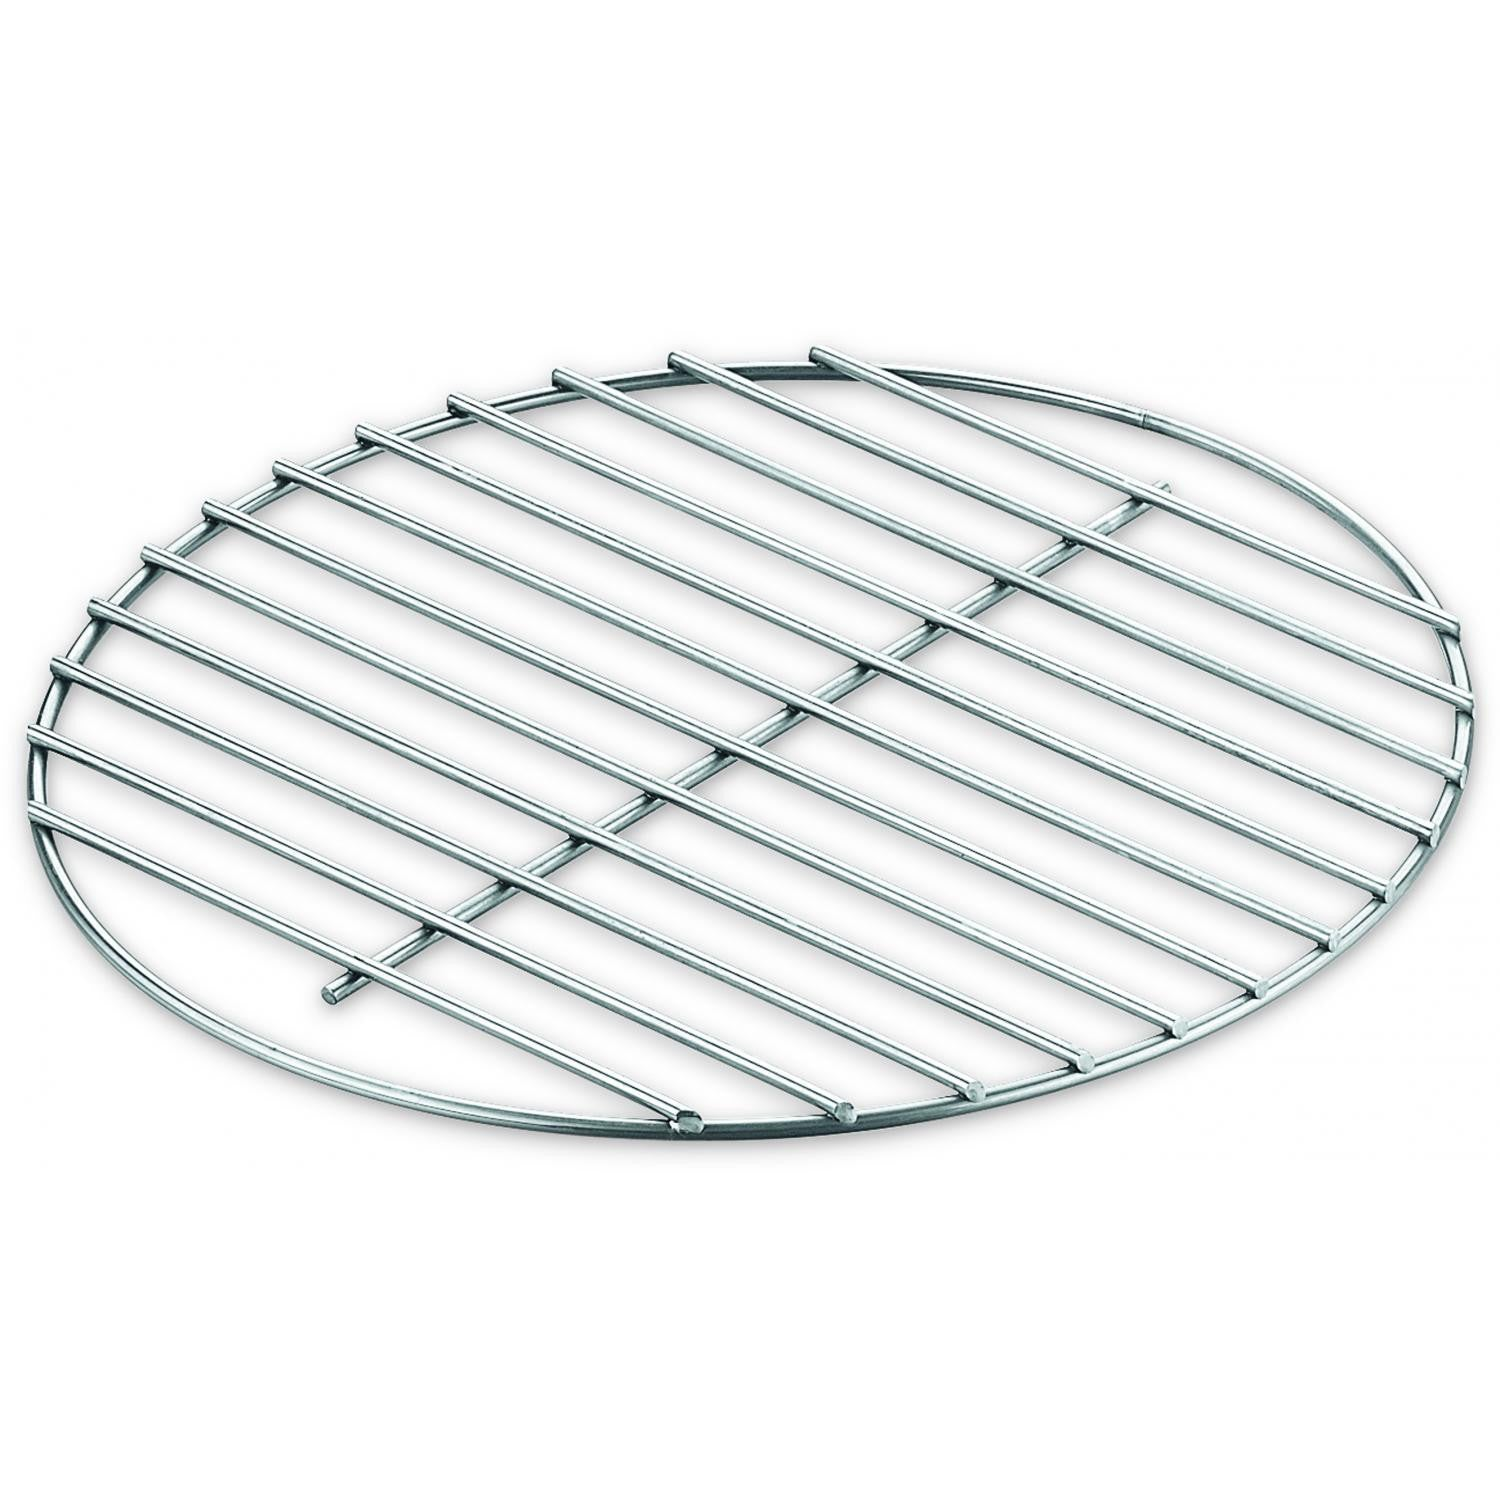 Weber 7439 Charcoal Cooking Grate For 14-Inch Kettle Grills